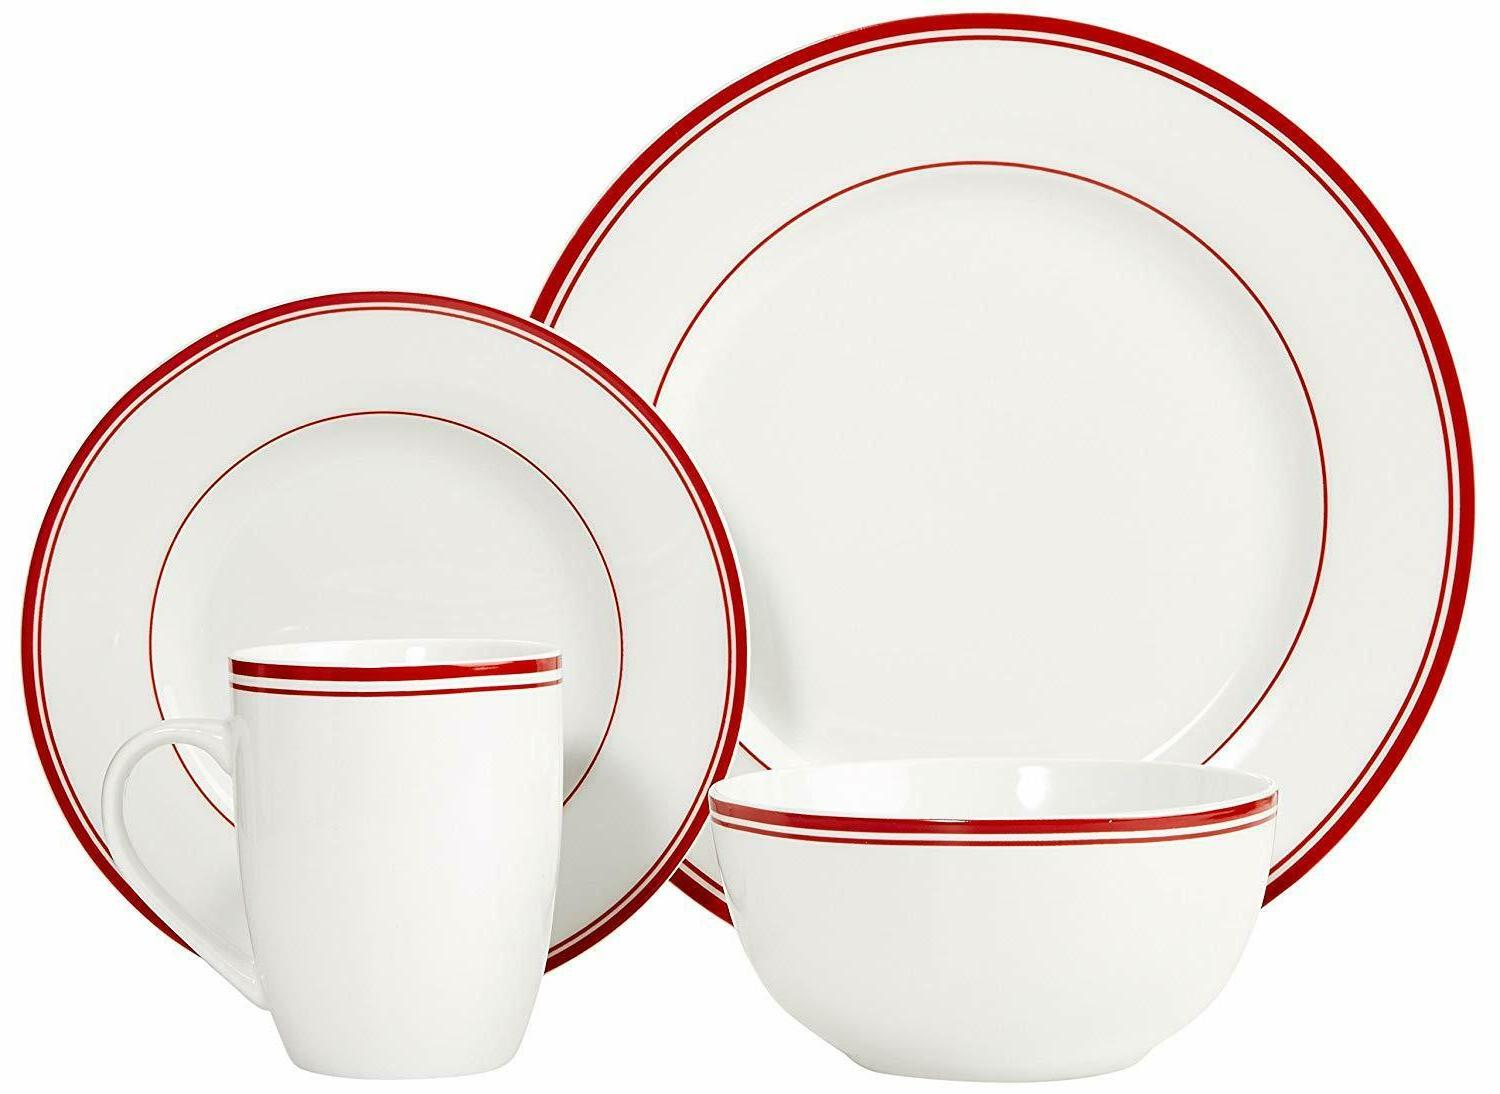 AmazonBasics 16-Piece Kitchen Plates, Bowls, Mugs,